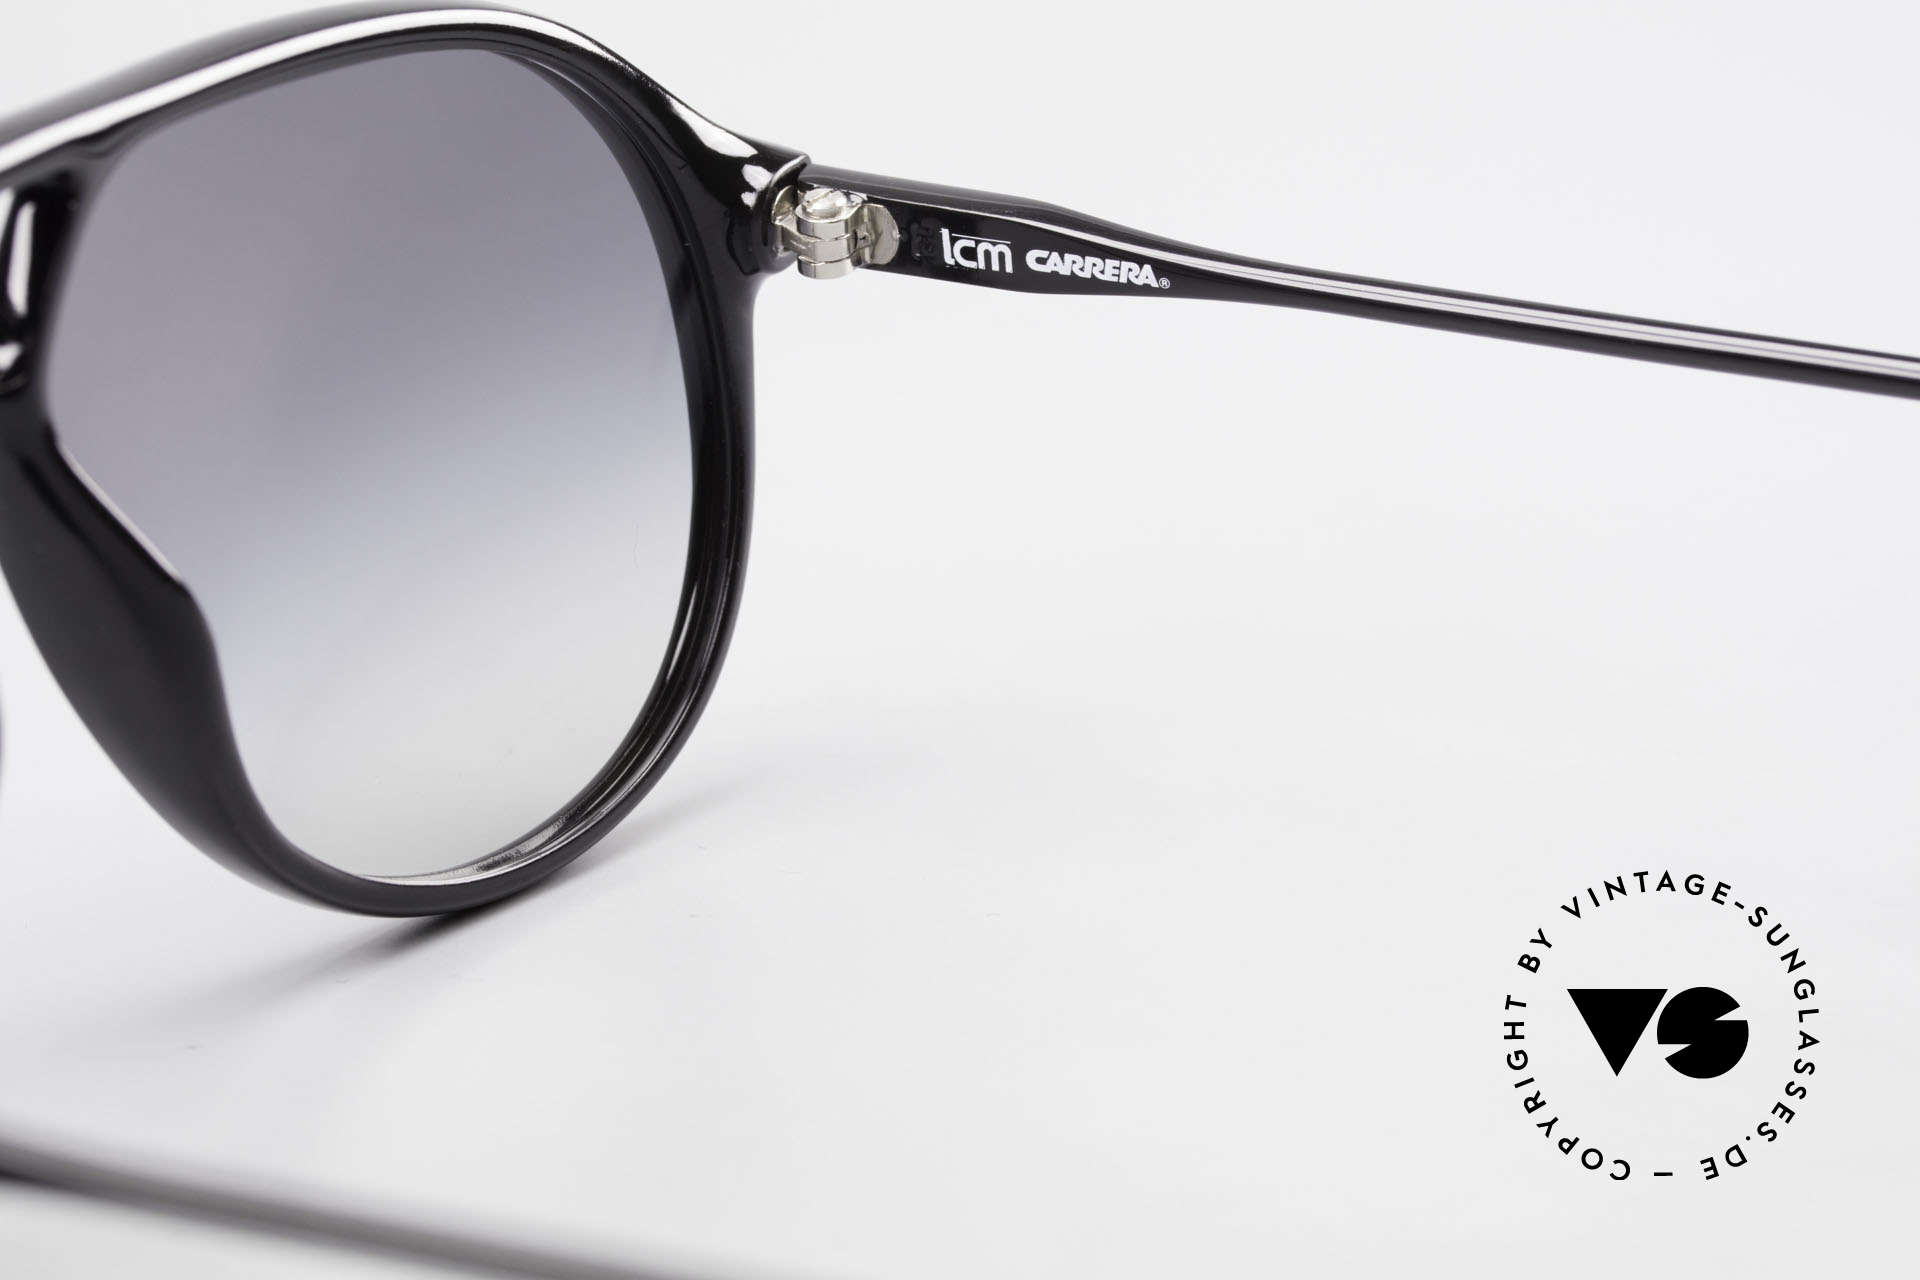 """Carrera 5425 80's Shades With Extra Lenses, Robert De Niro wore such a model in the movie """"Casino"""", Made for Men"""